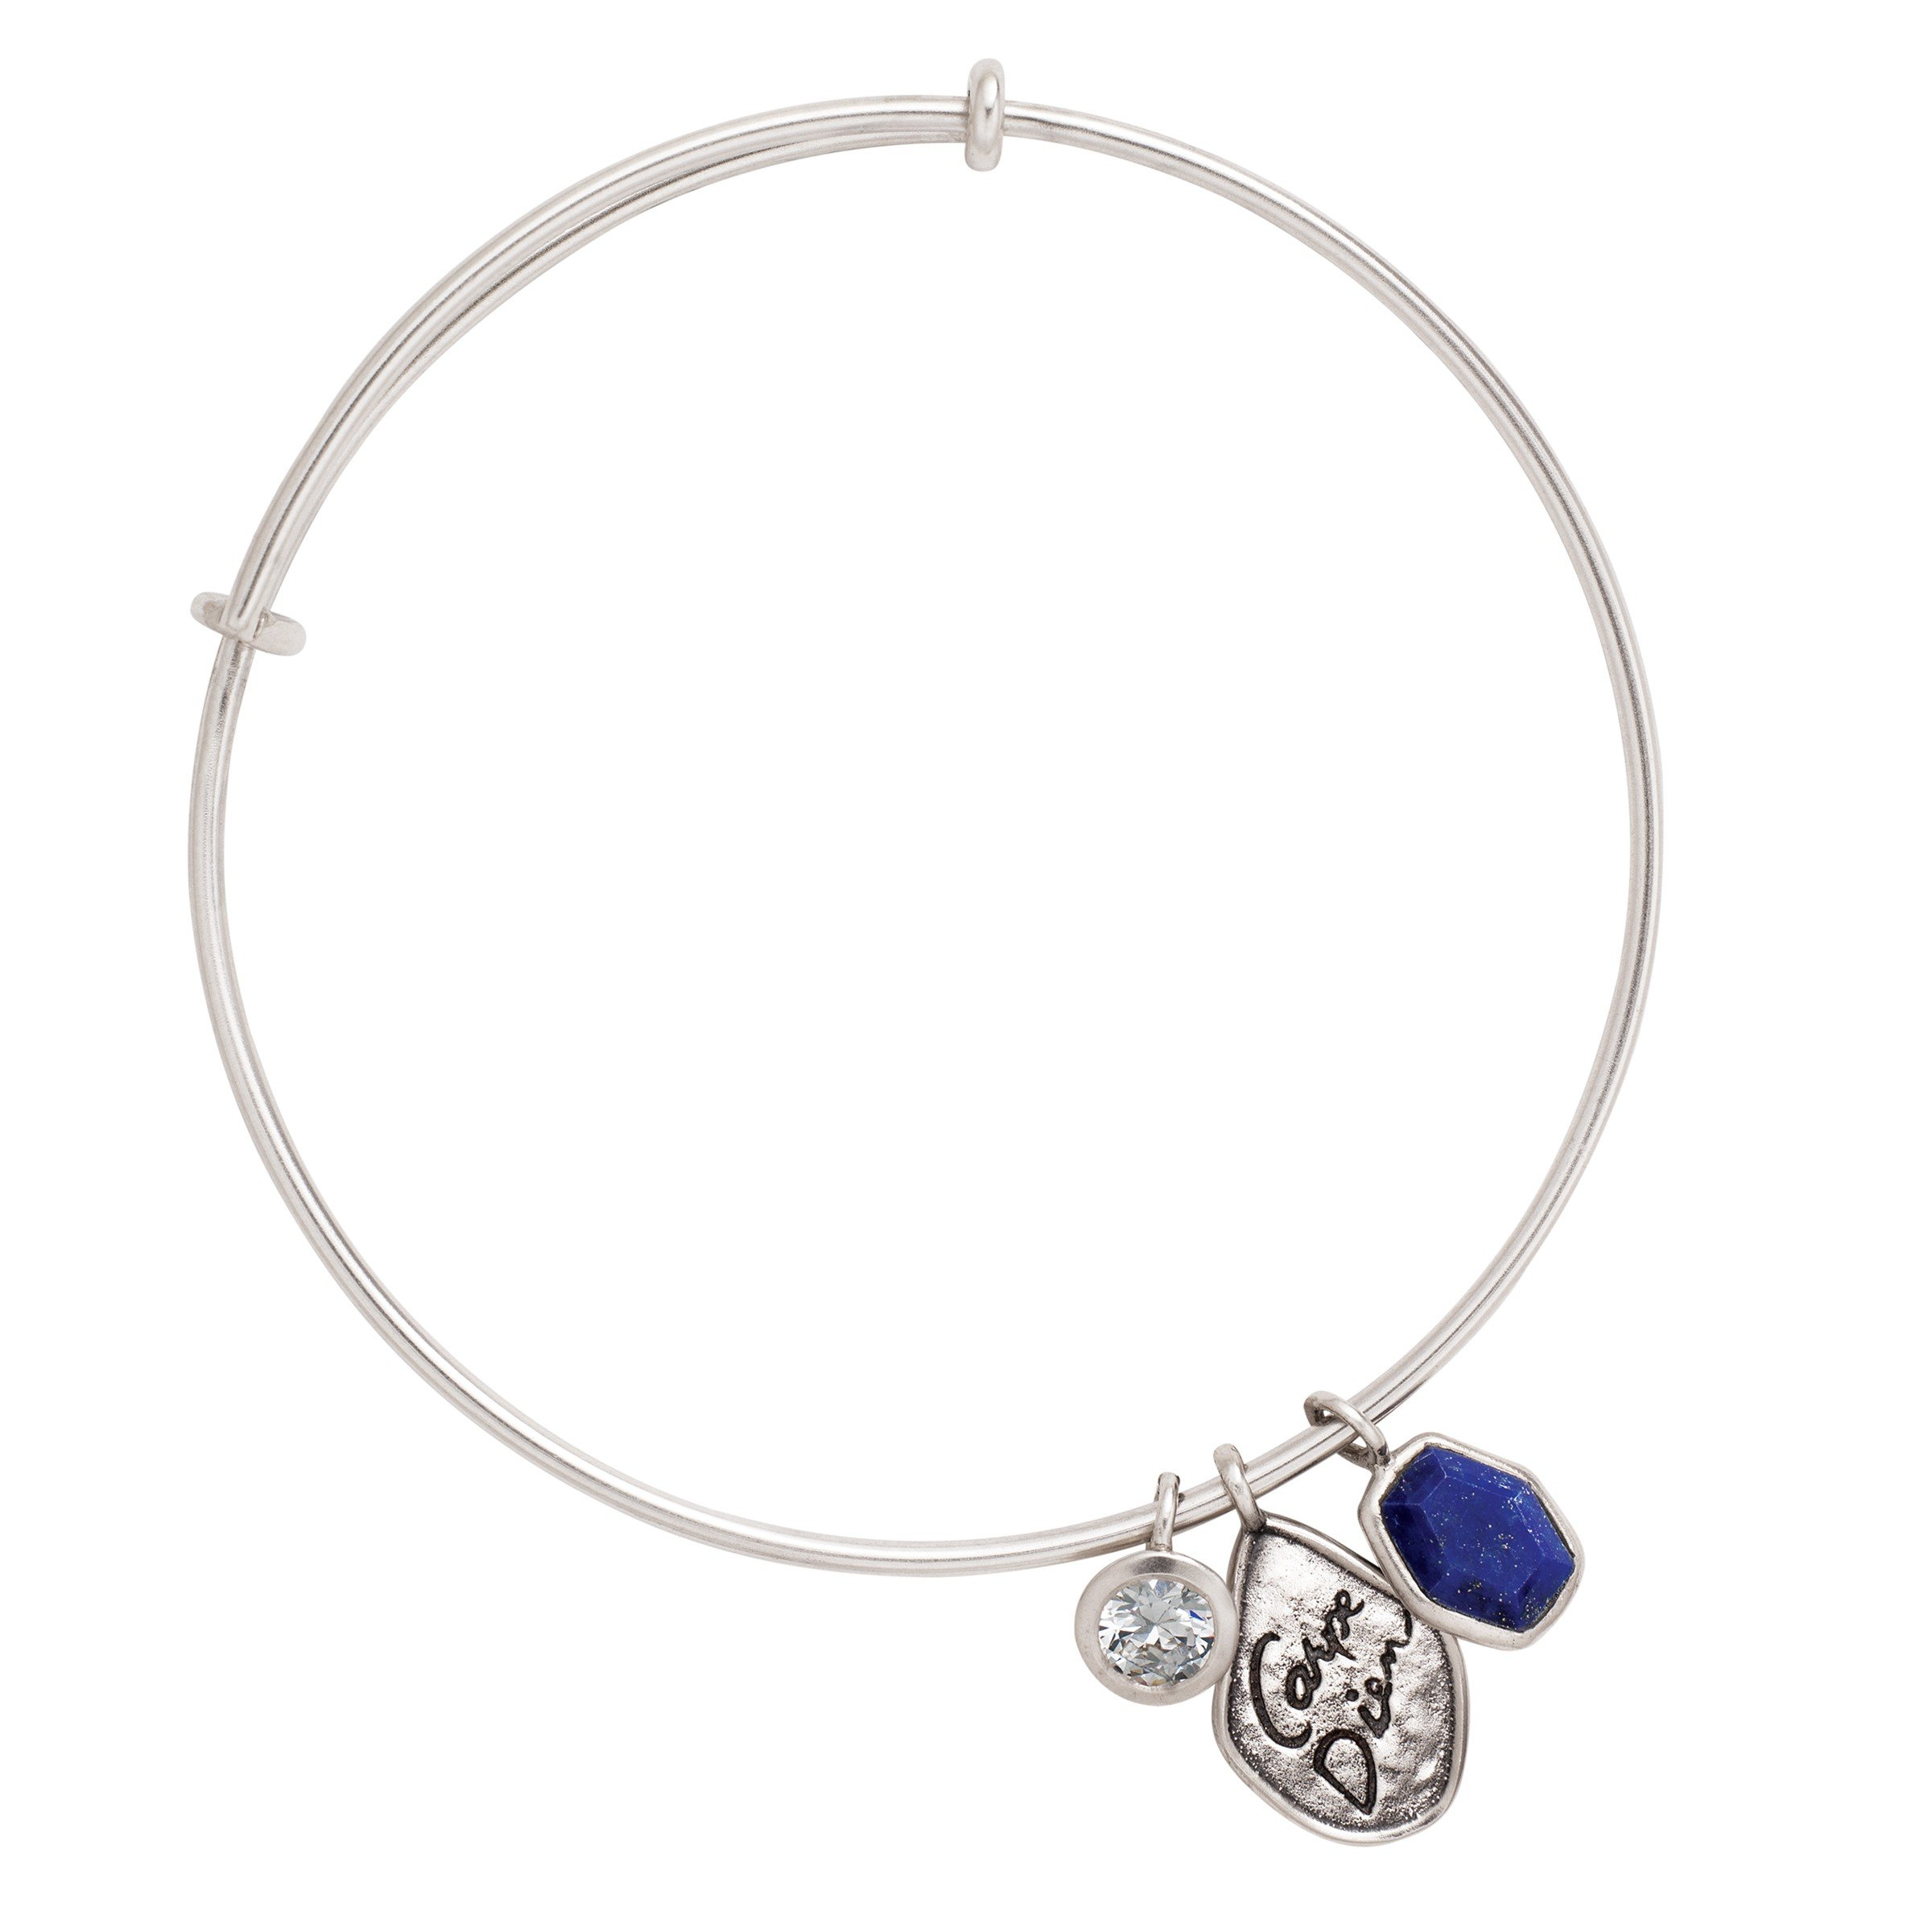 Silpada 'Carpe Diem' Natural Lapis Adjustable Bangle Bracelet with Swarovski Crystals in Sterling Silver, 7.75''